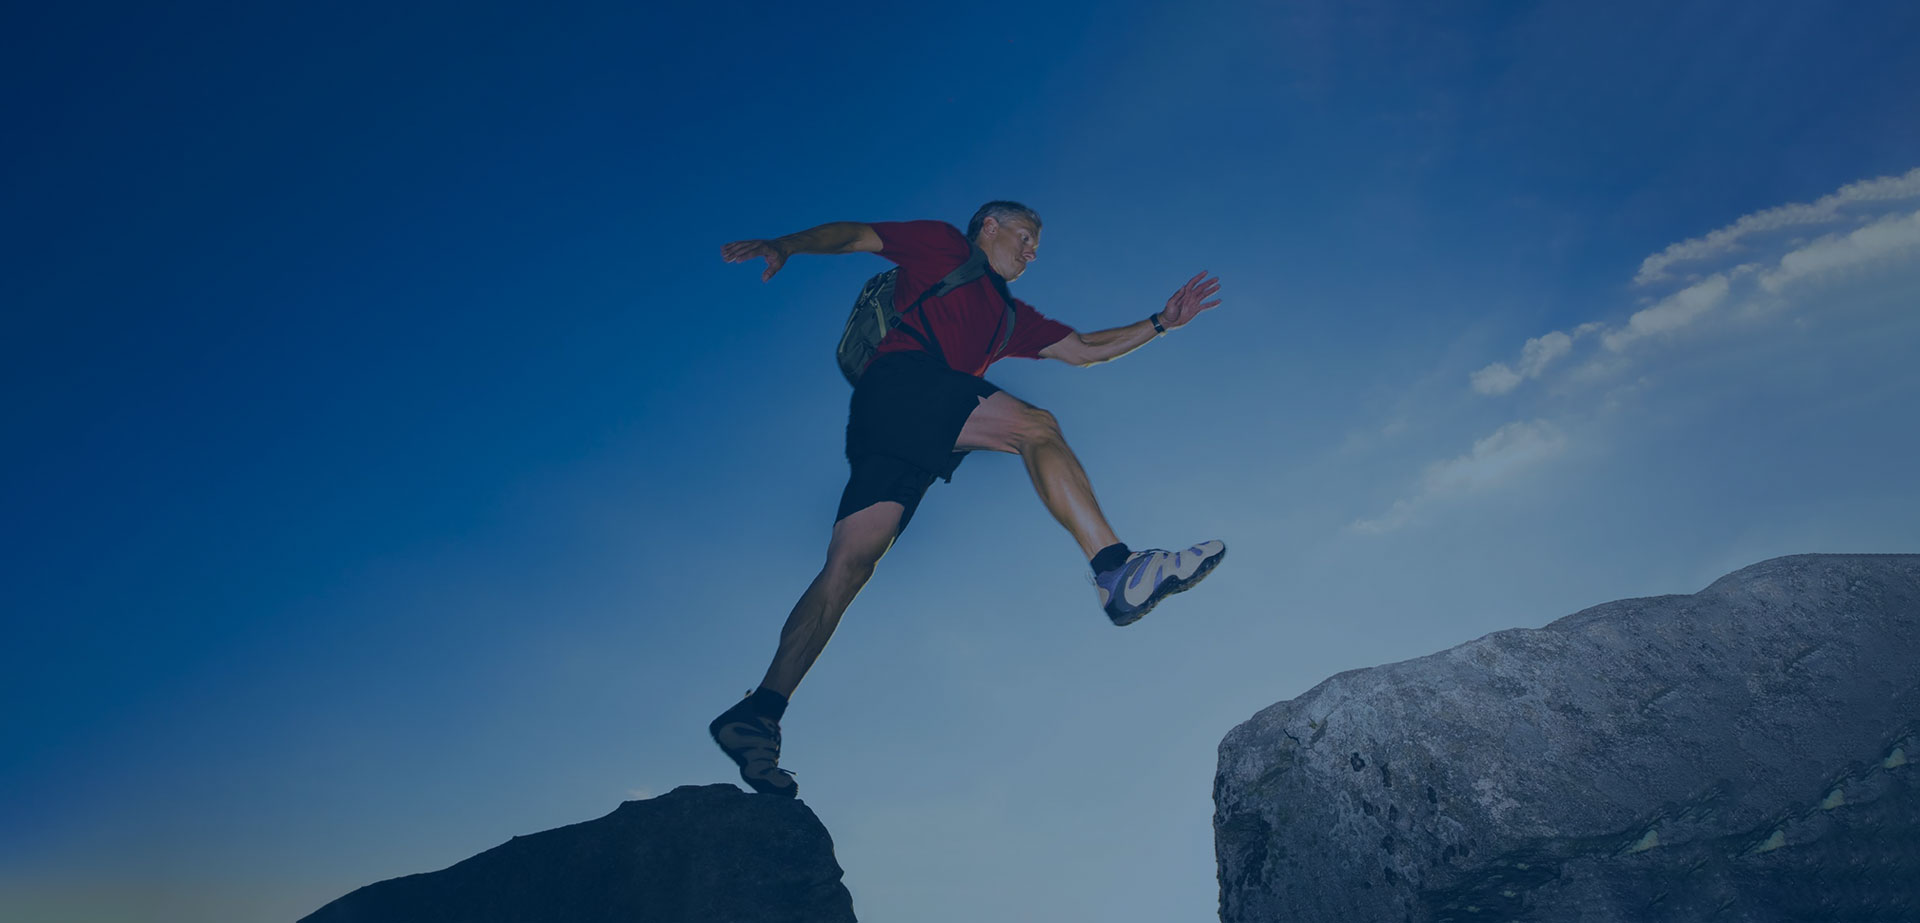 middle aged man wearing a backpack leaping from one boulder to another on a clear day